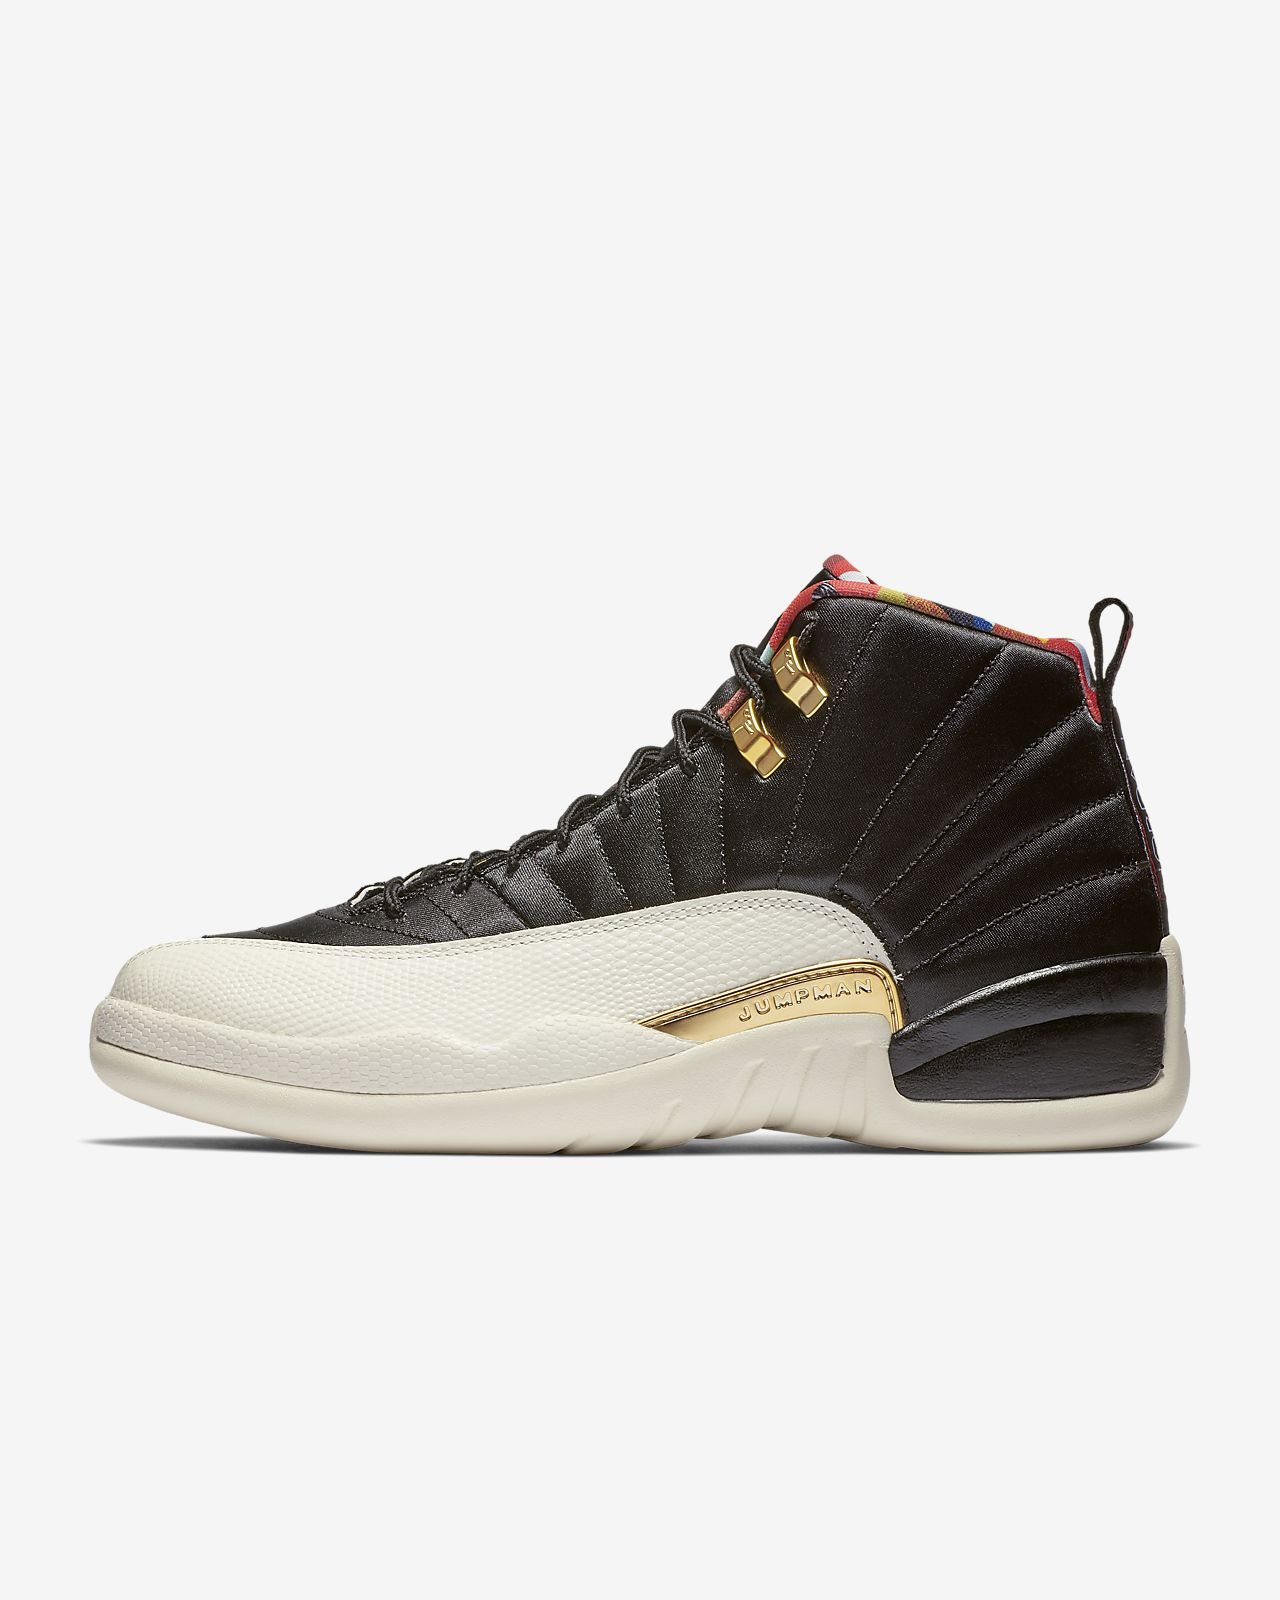 4b35716e82ea Air Jordan 12 Retro CNY Men s Shoe. Nike.com